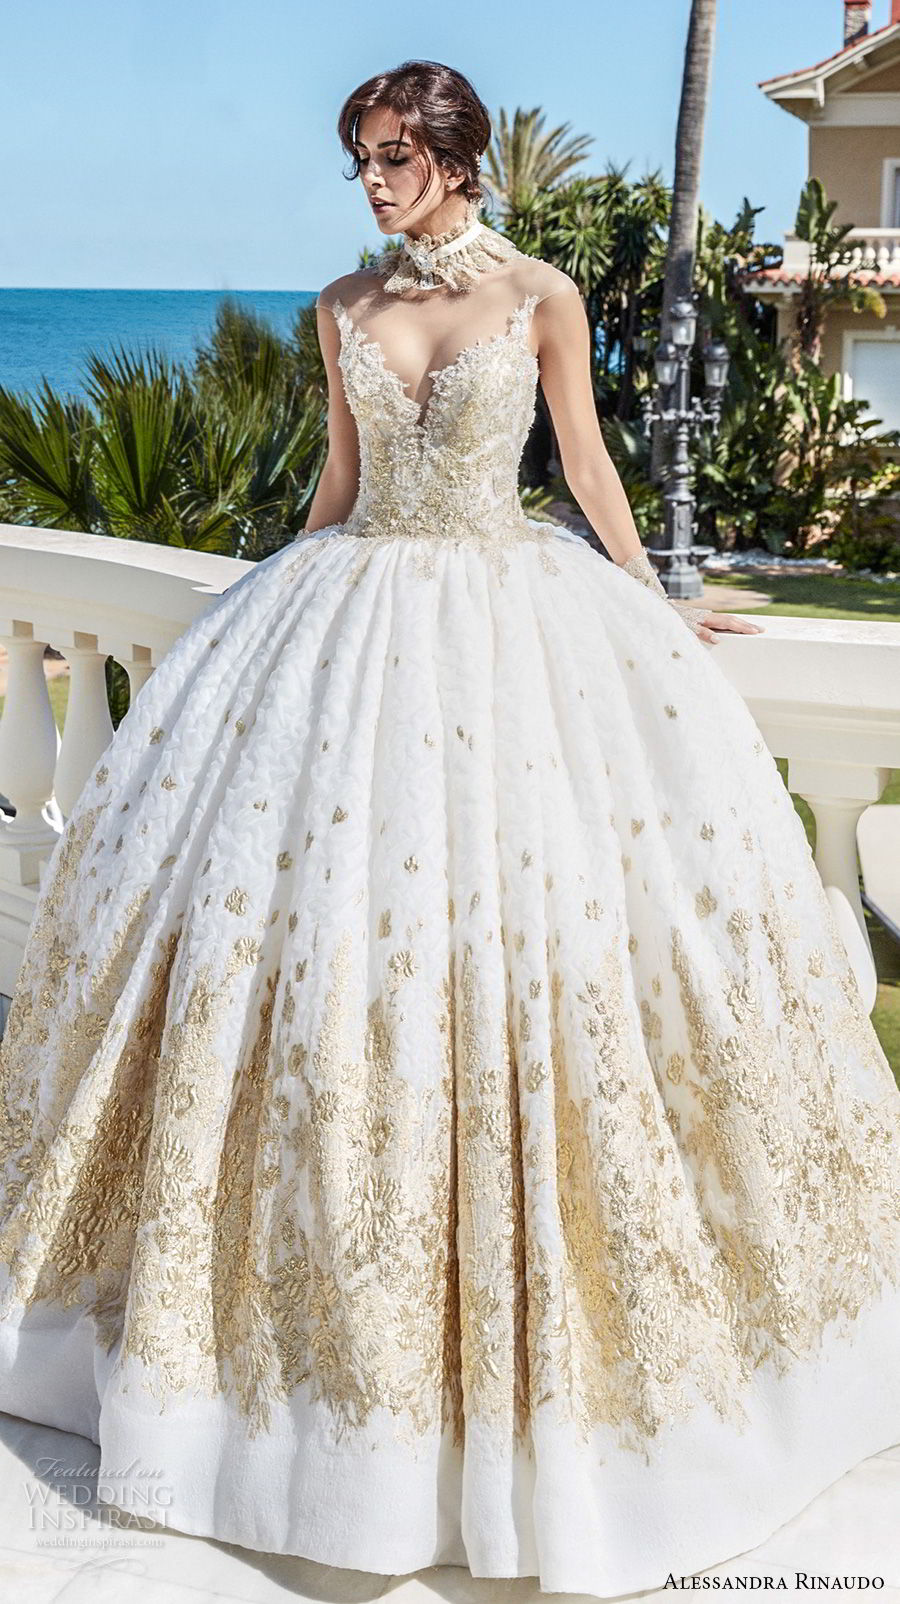 alessandra rinaudo 2018 bridal illusion strapless sweetheart neckline heavily gold embellished bodice princess ball gown wedding dress sheer rasor back sweep train (41) mv